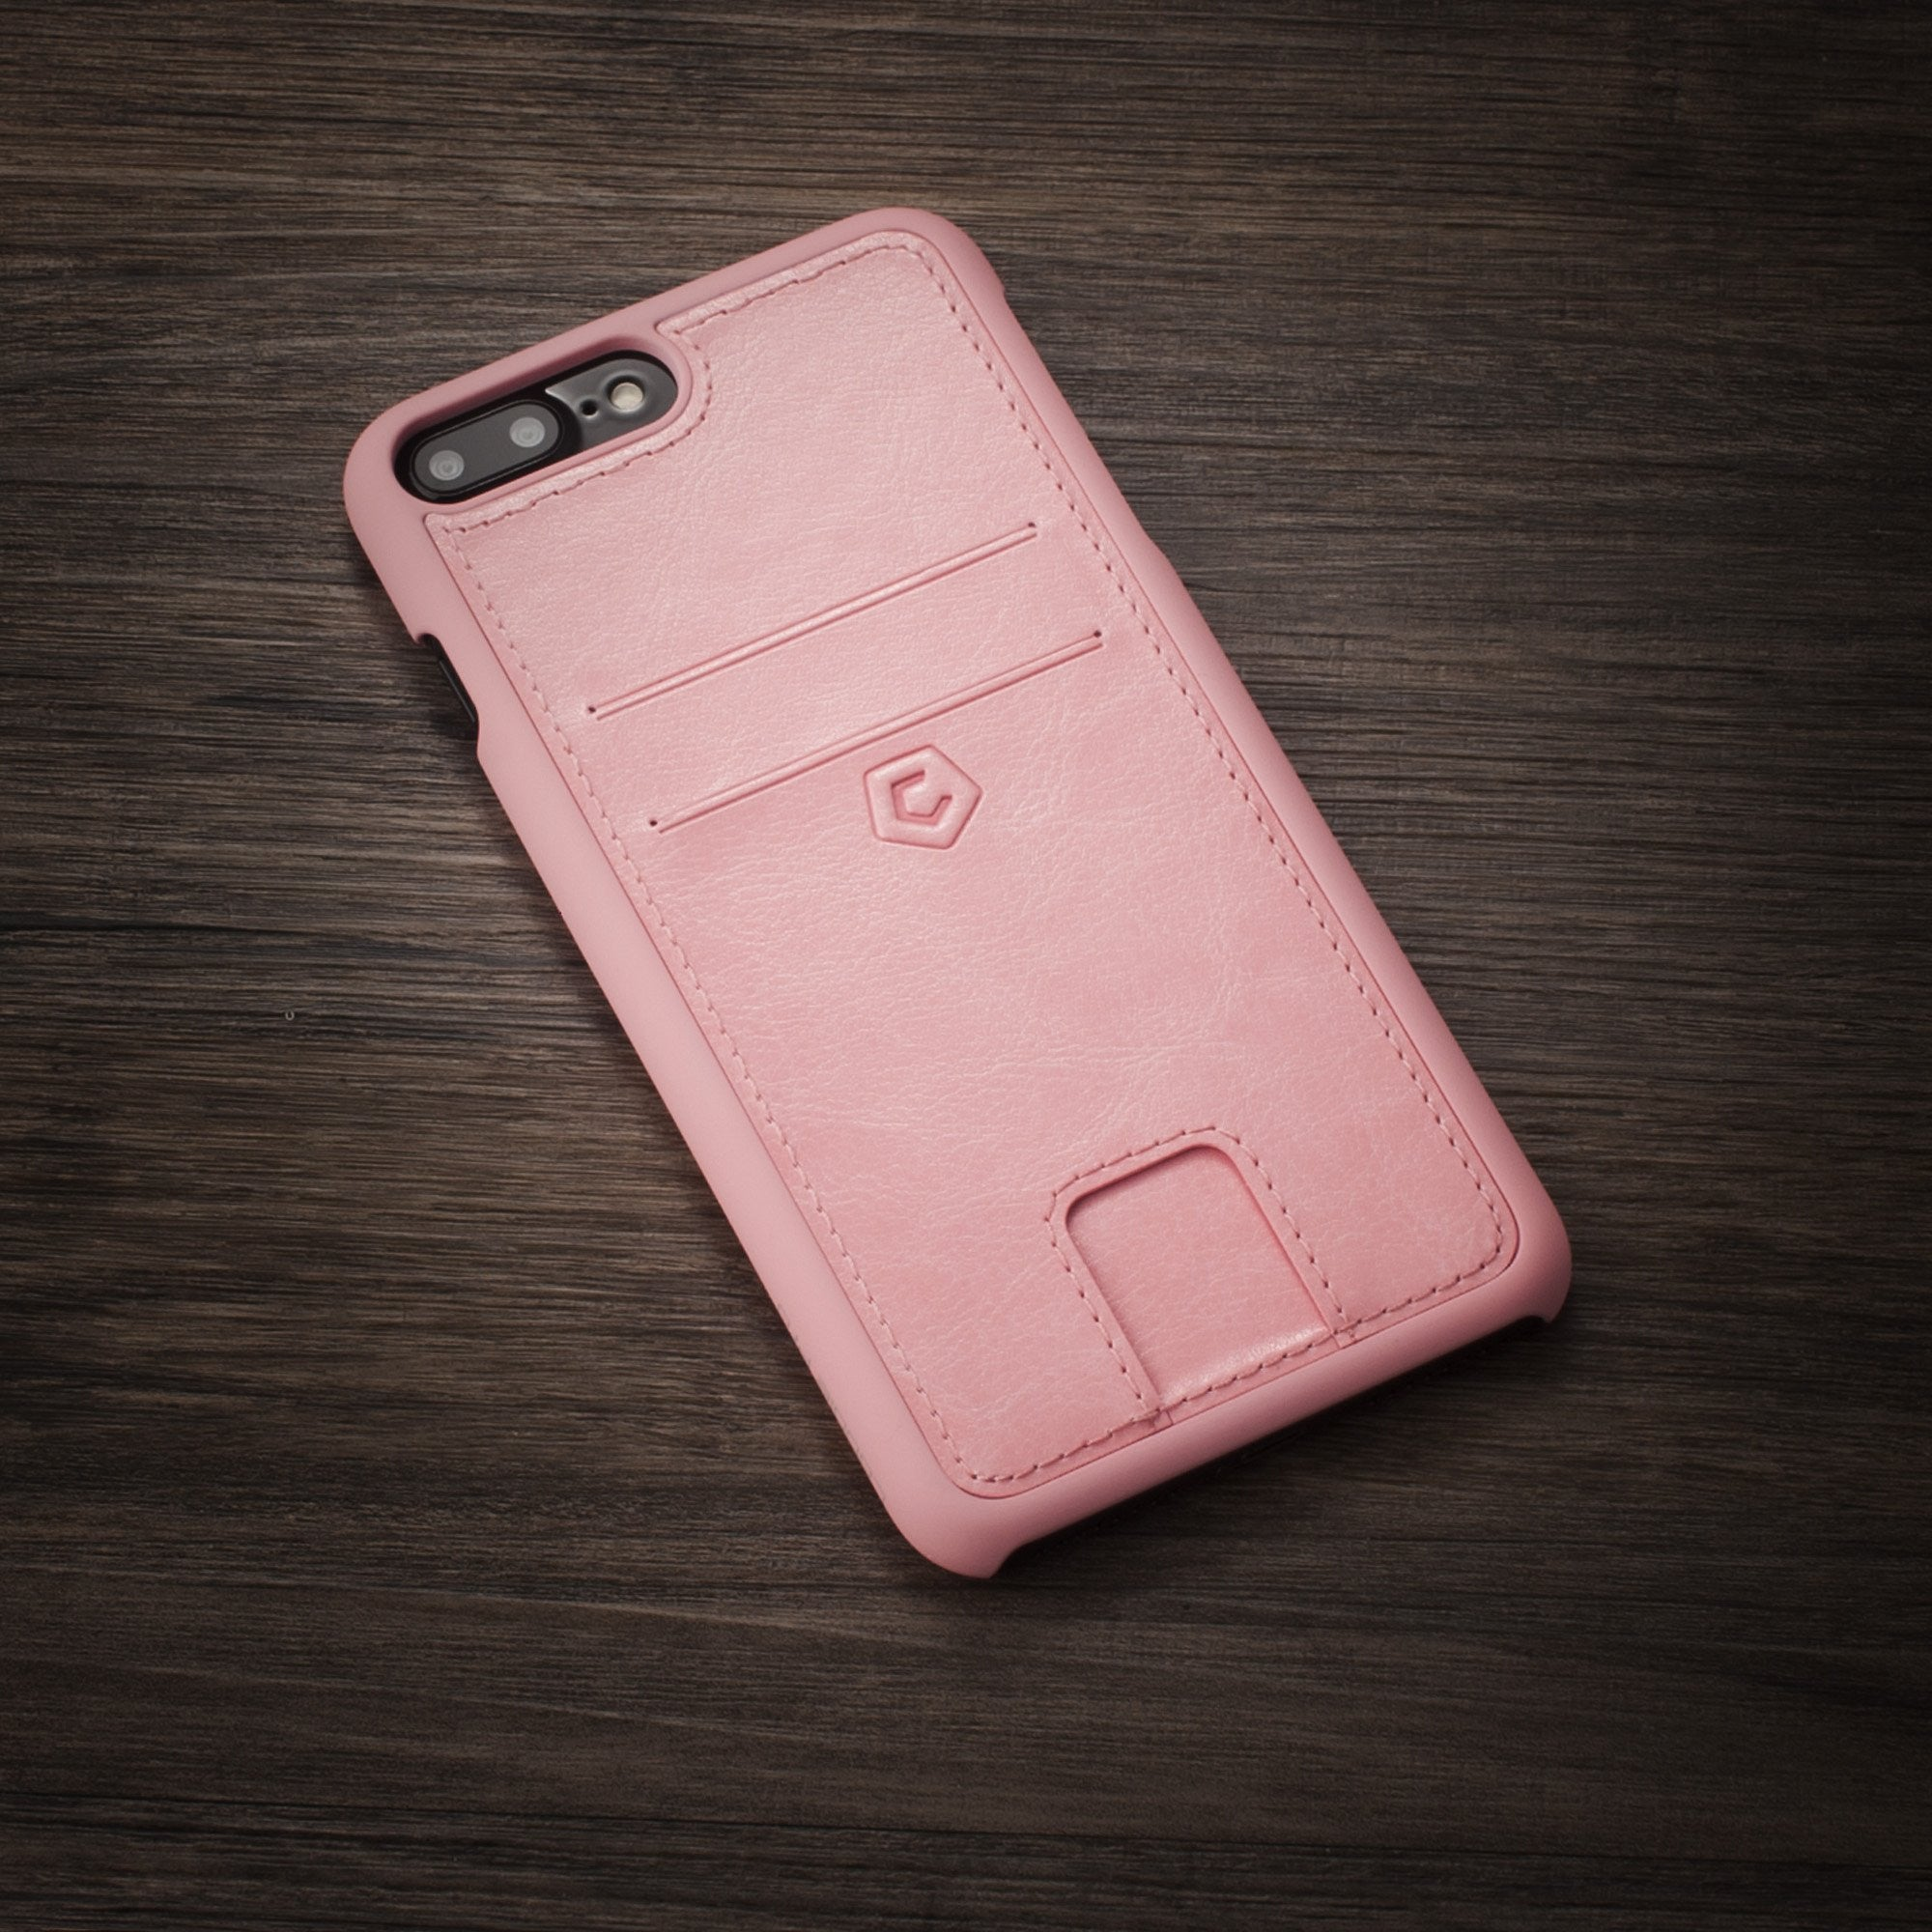 iphone 7 pink leather case